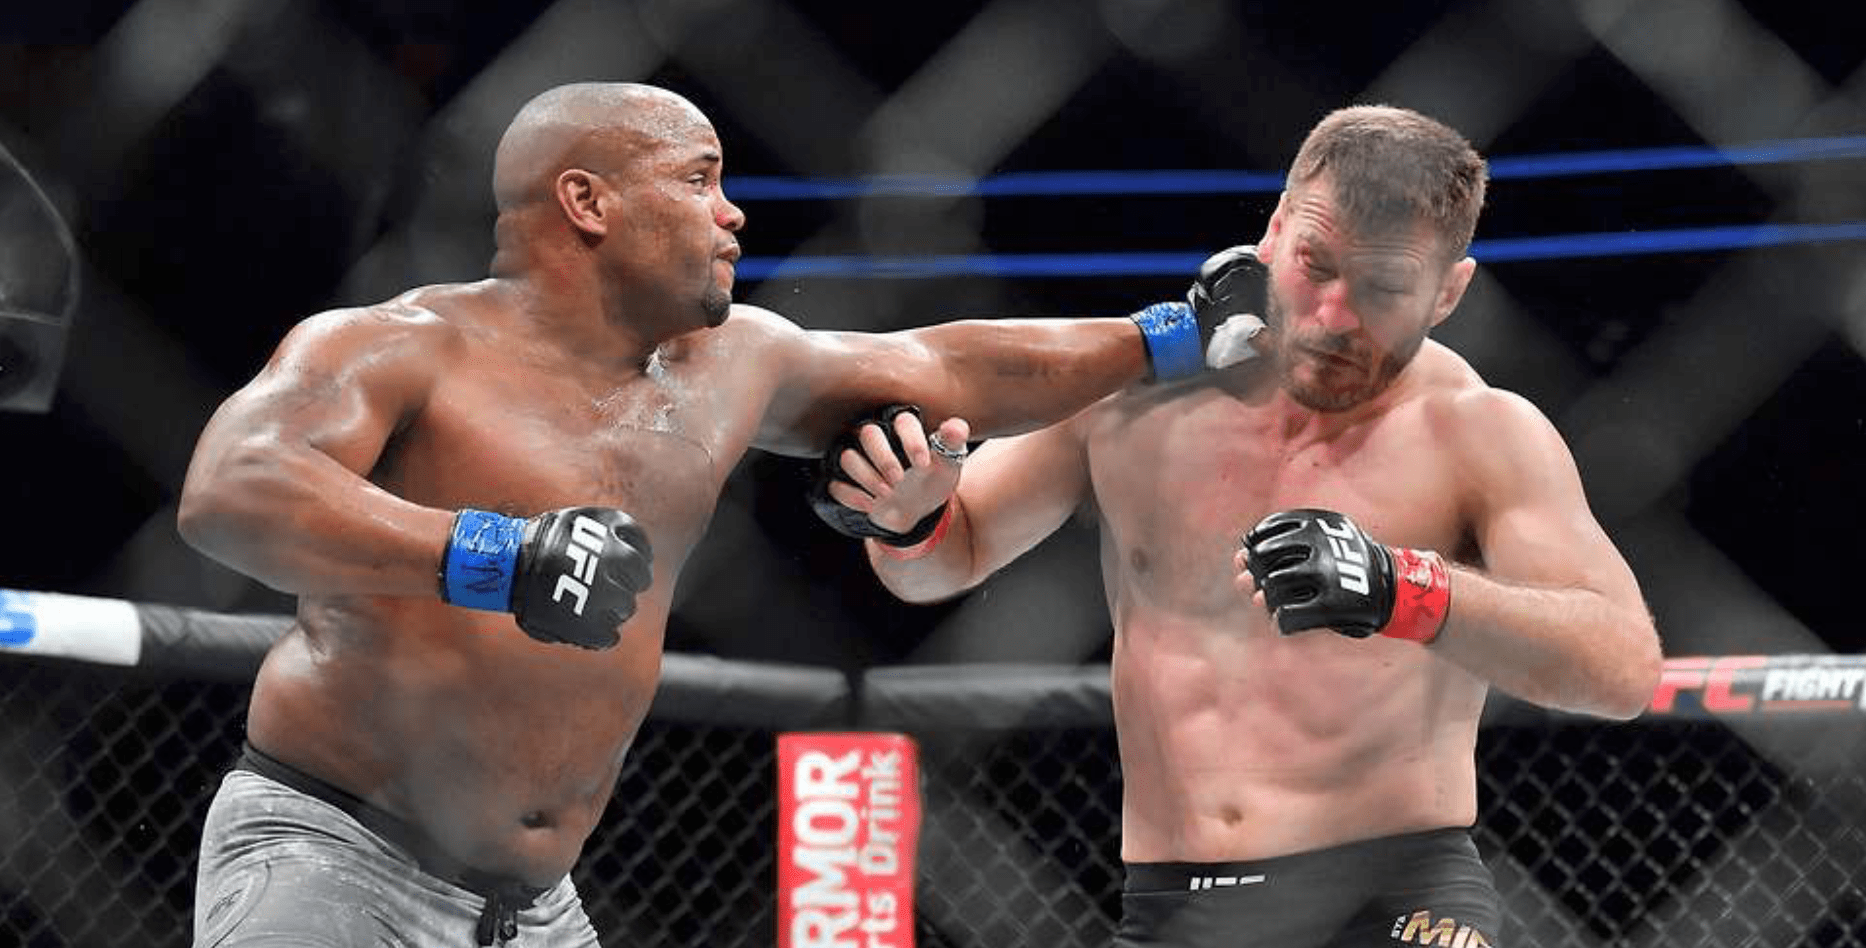 UFC – Daniel Cormier to Stipe Miocic: Sign the Contract!